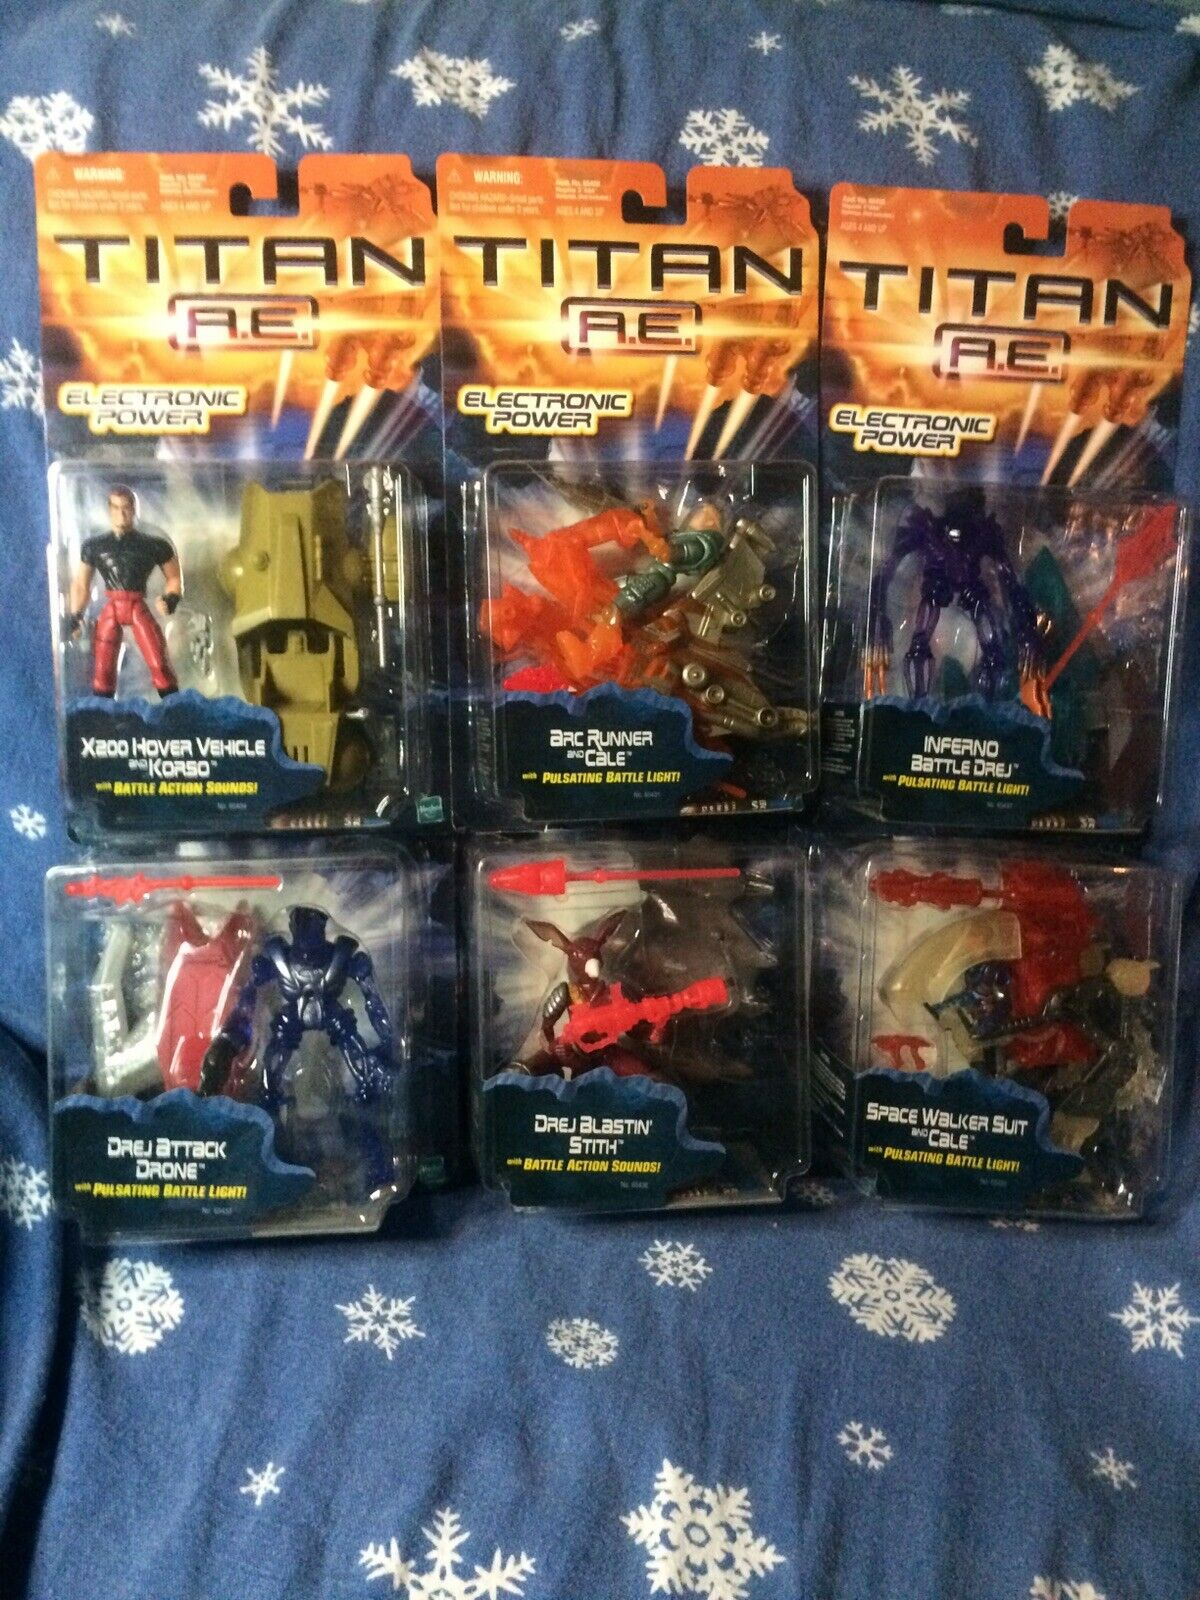 Lot of of of 6 TITAN A.E. Electronic Power Action Figures  (NOS) 2000 003354